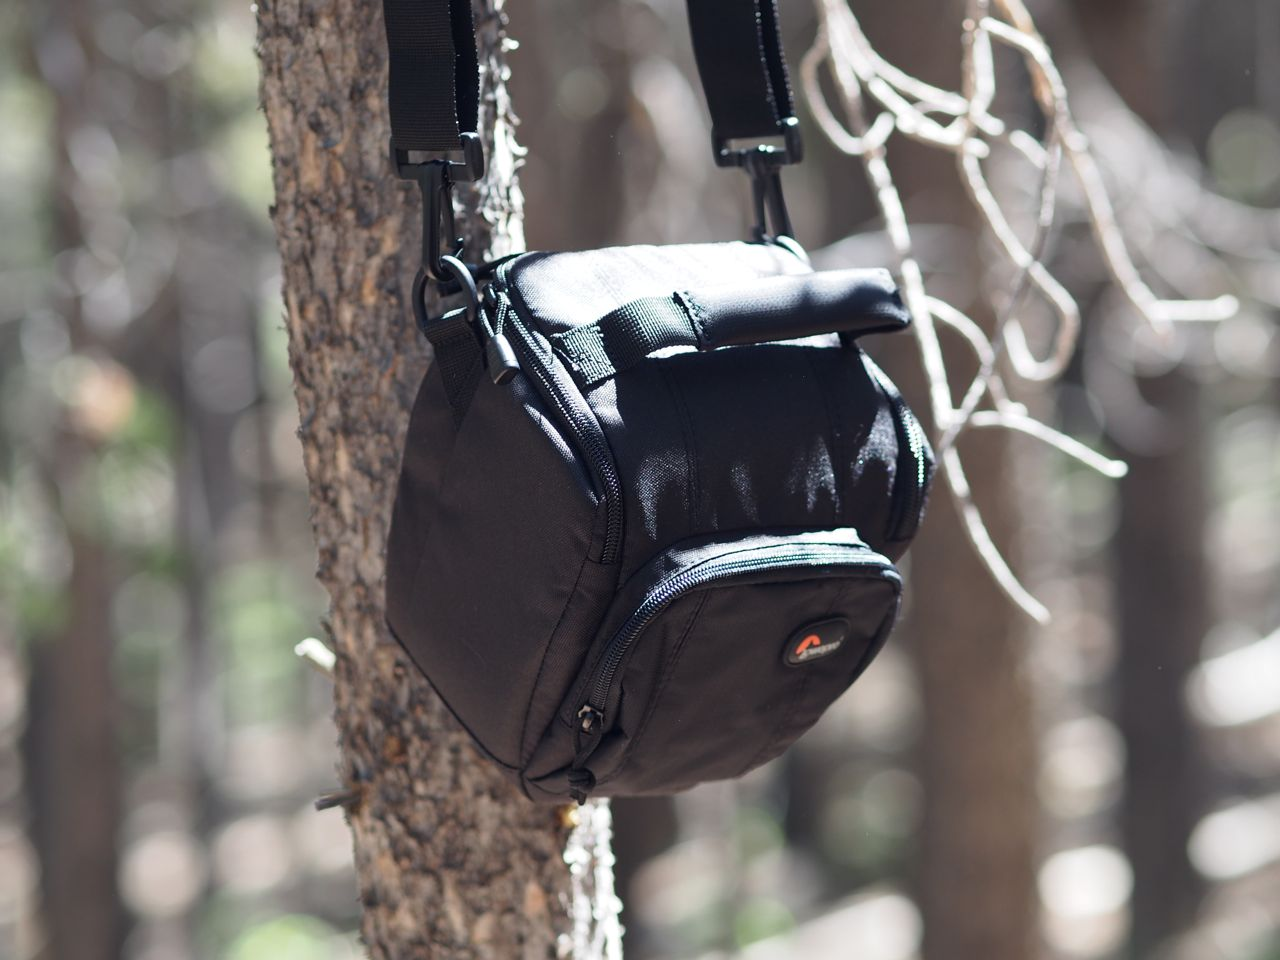 Review Lowepro Toploader Zoom Aw Ii Camera Bag Robonza 55 Black But It Is More Than Just An Insert A Great Stand Alone I Have Used For Travel And Short Hikes With The Pups